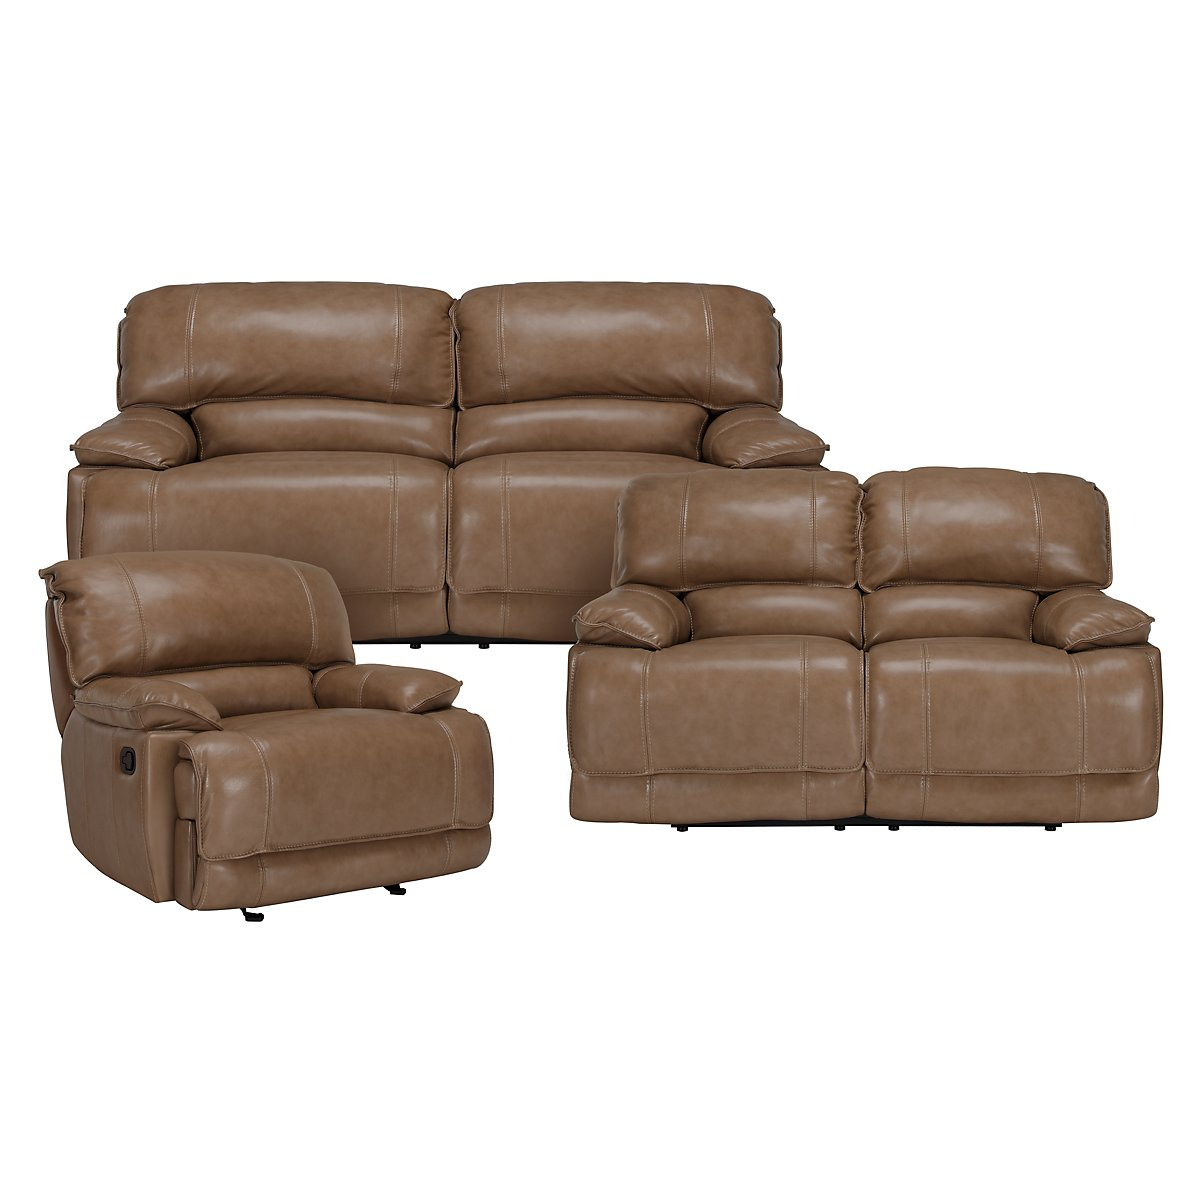 Benson Dark Taupe Leather & Vinyl Power Reclining Living Room